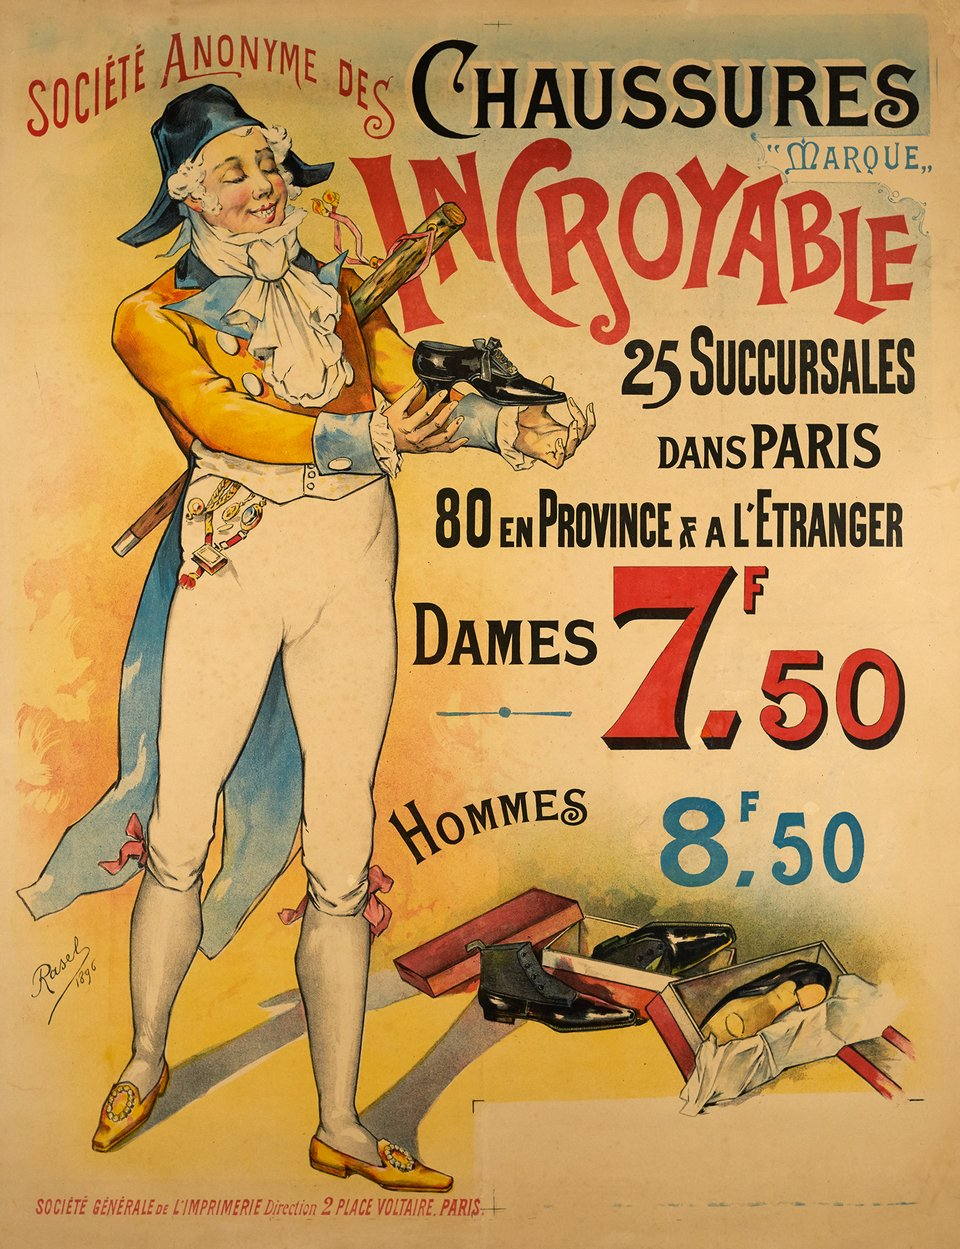 Chaussures Incroyable – Affiche ancienne – RASEL – 1896